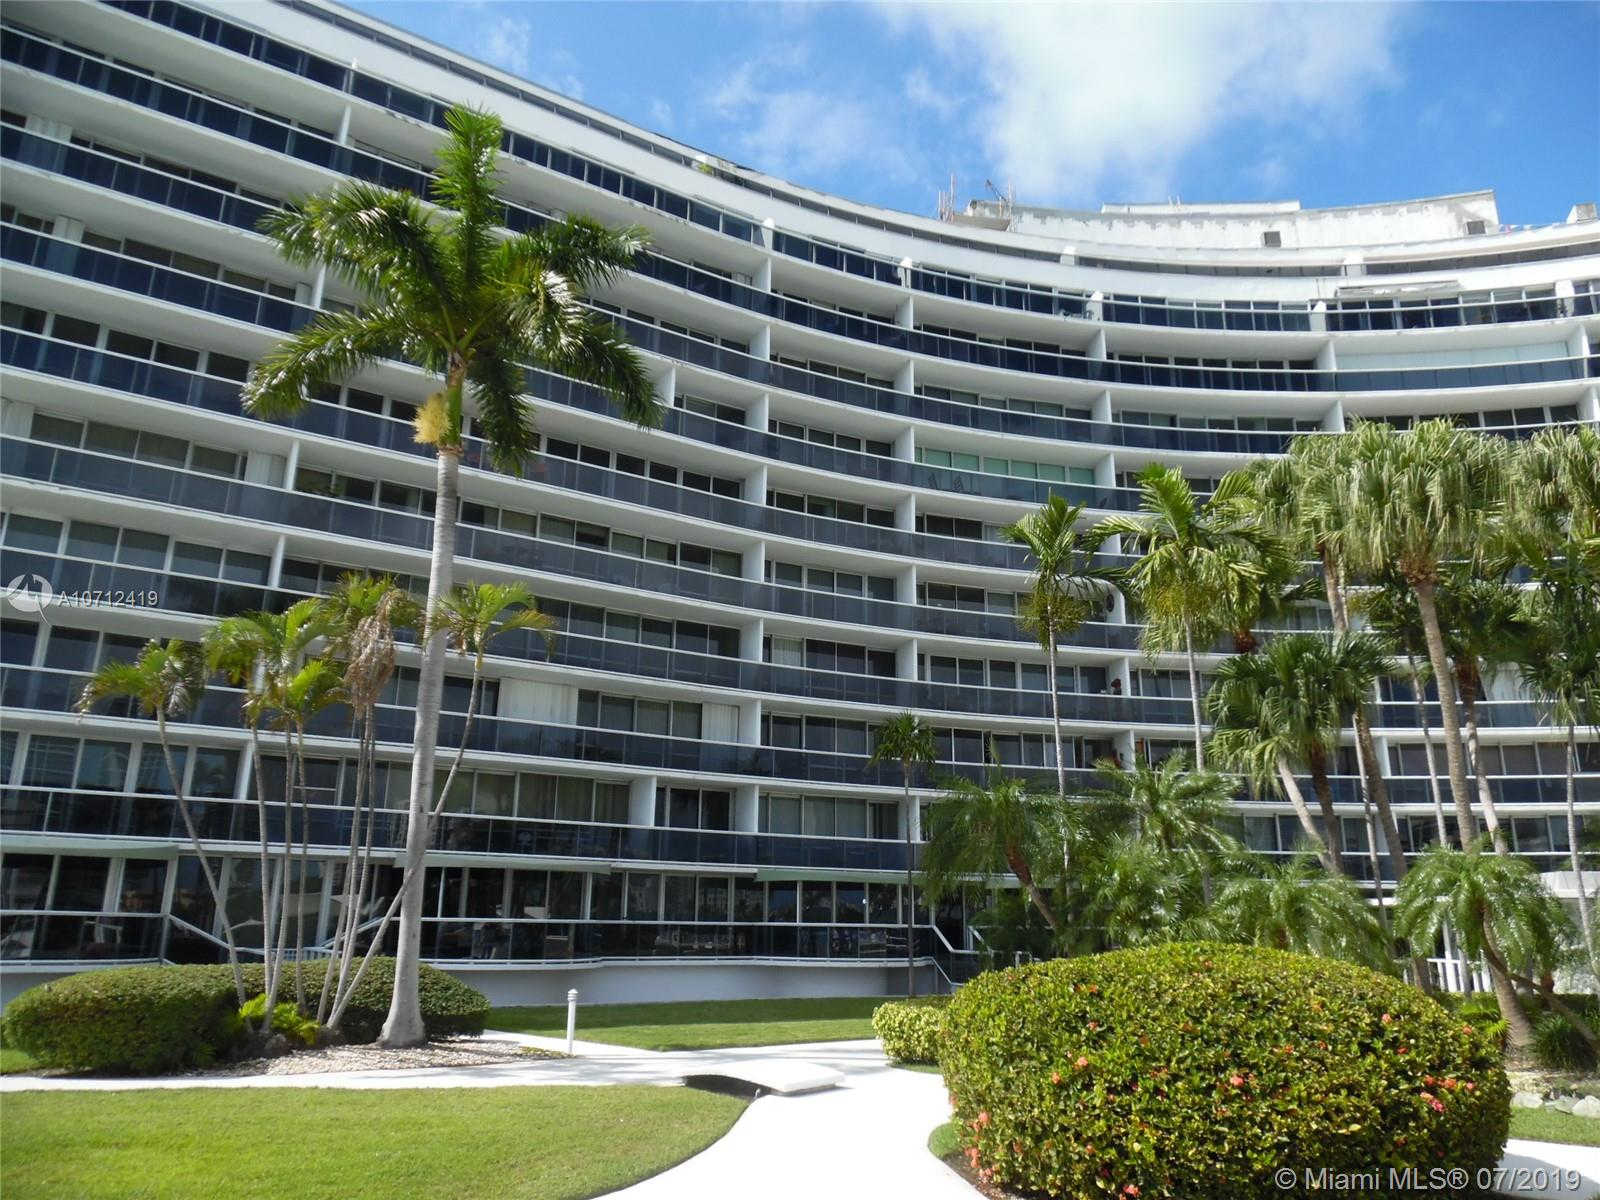 900 Bay Dr #1011, Miami Beach, FL 33141 is now new to the market!